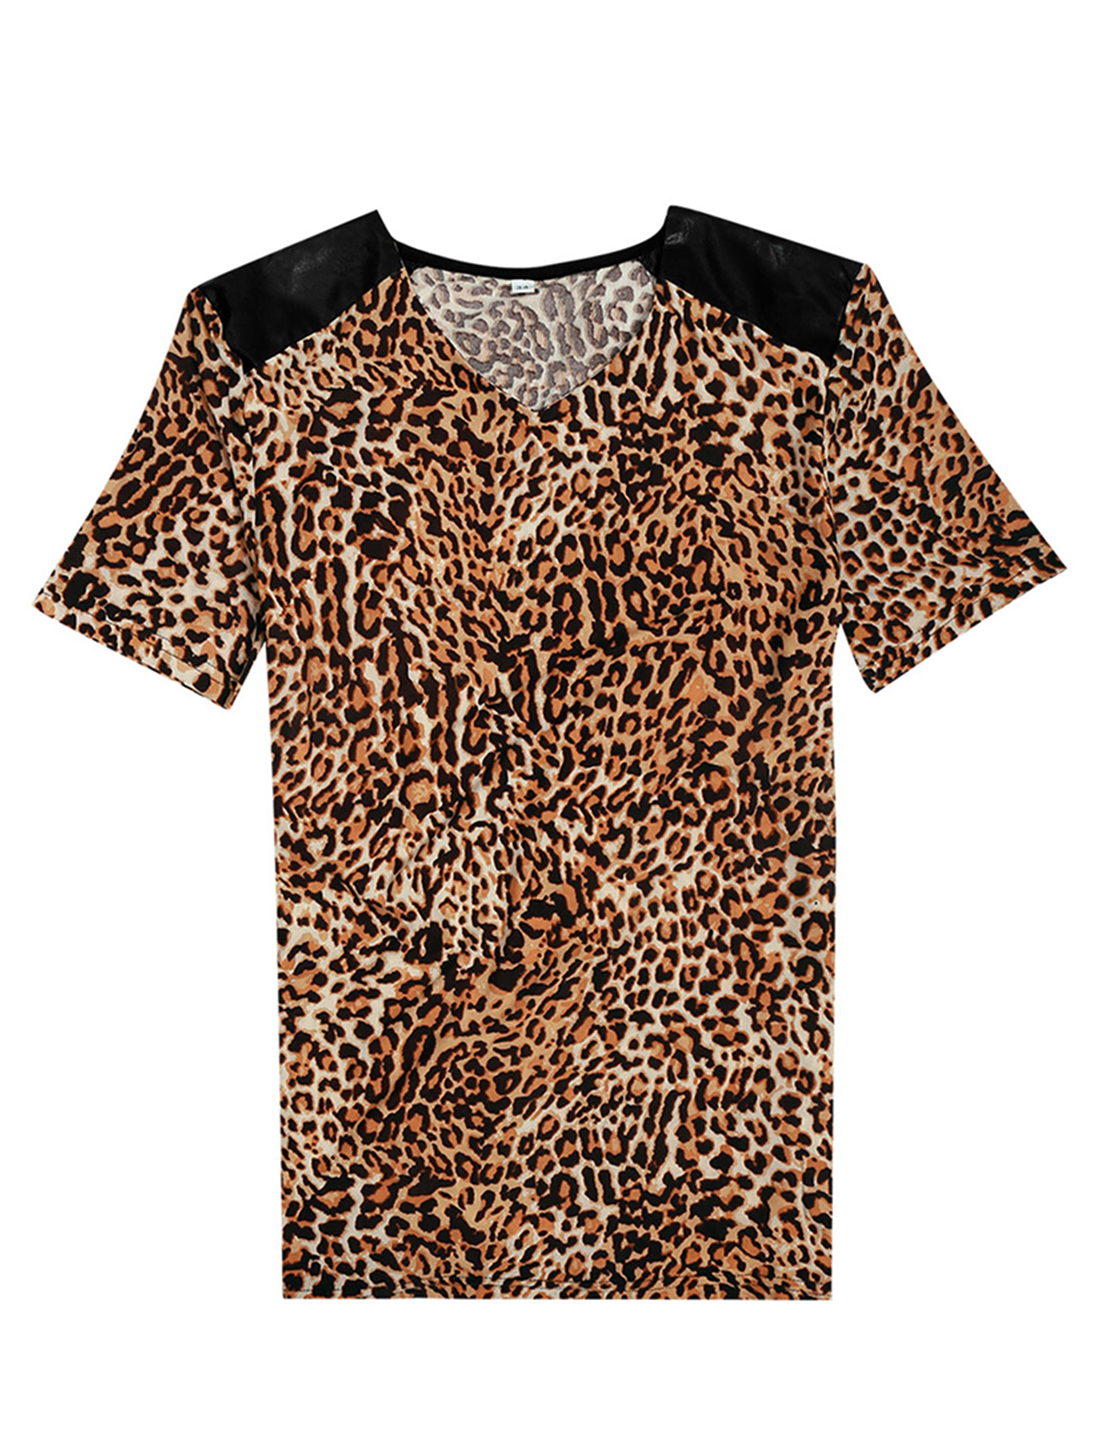 Men Leopard Print V Neck T Shirt Short Sleeve Shoulder PU Panel T-Shirt S